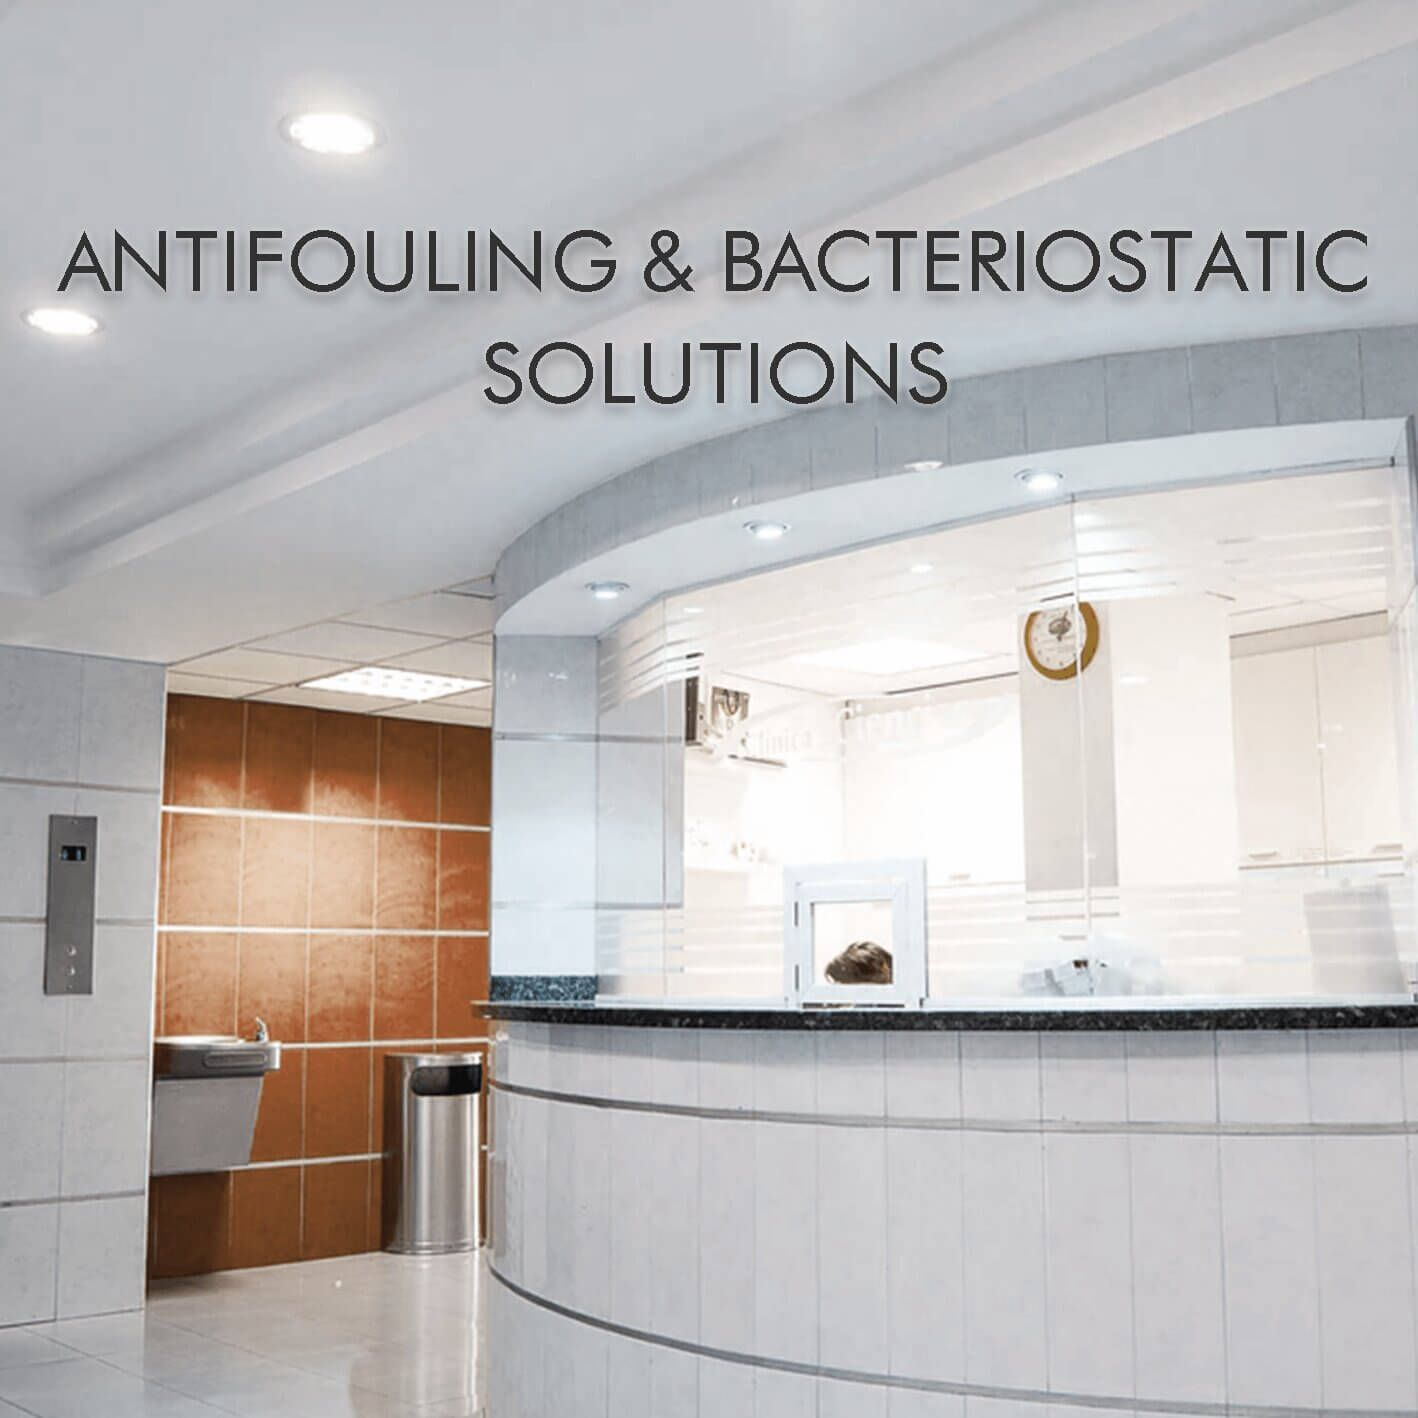 Some of the spaces which include the hospitals, children's rooms, kindergartens, clean rooms need the antibacterial property of the building boards. PVDF laminated metal has many advantages contain antibacterial property, Anti-UV, weatherproof, grade 2 incombustibility, waterproof and mildew proof. The PVDF film covers the substrate of metal that lengthen the using life.